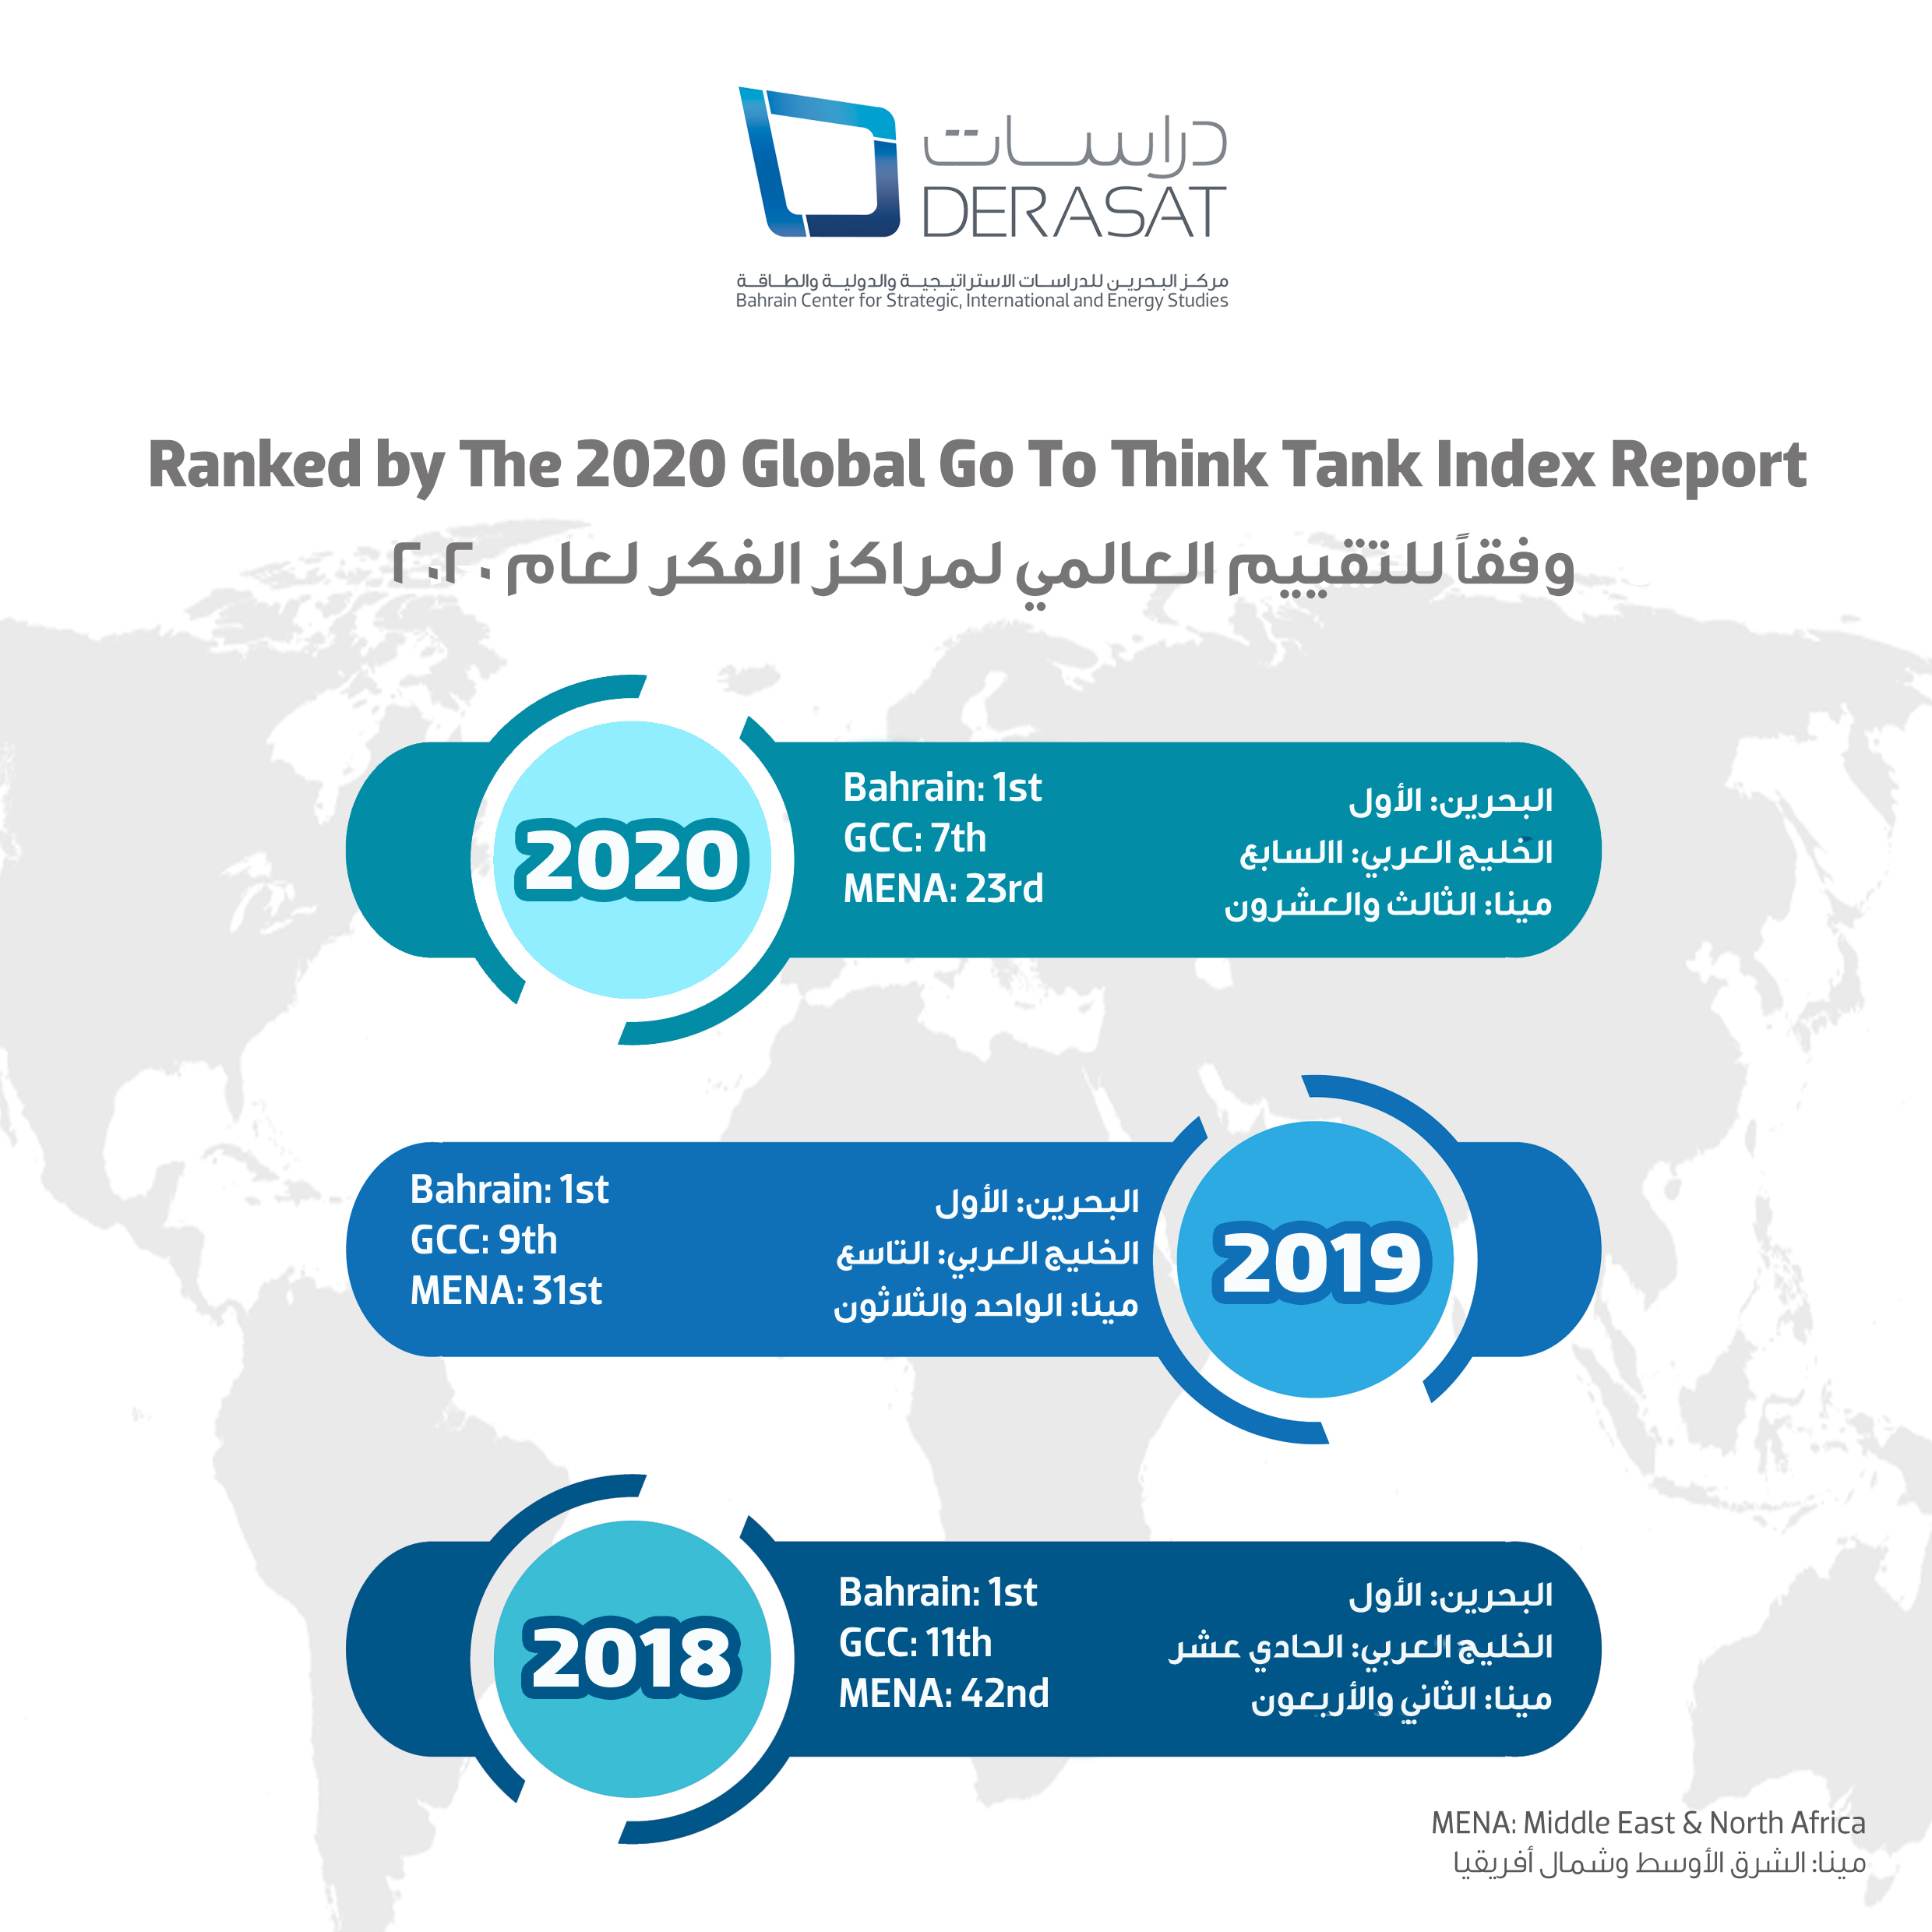 Derasat moves up the ranks of the 2020 Global Think-Tank Index